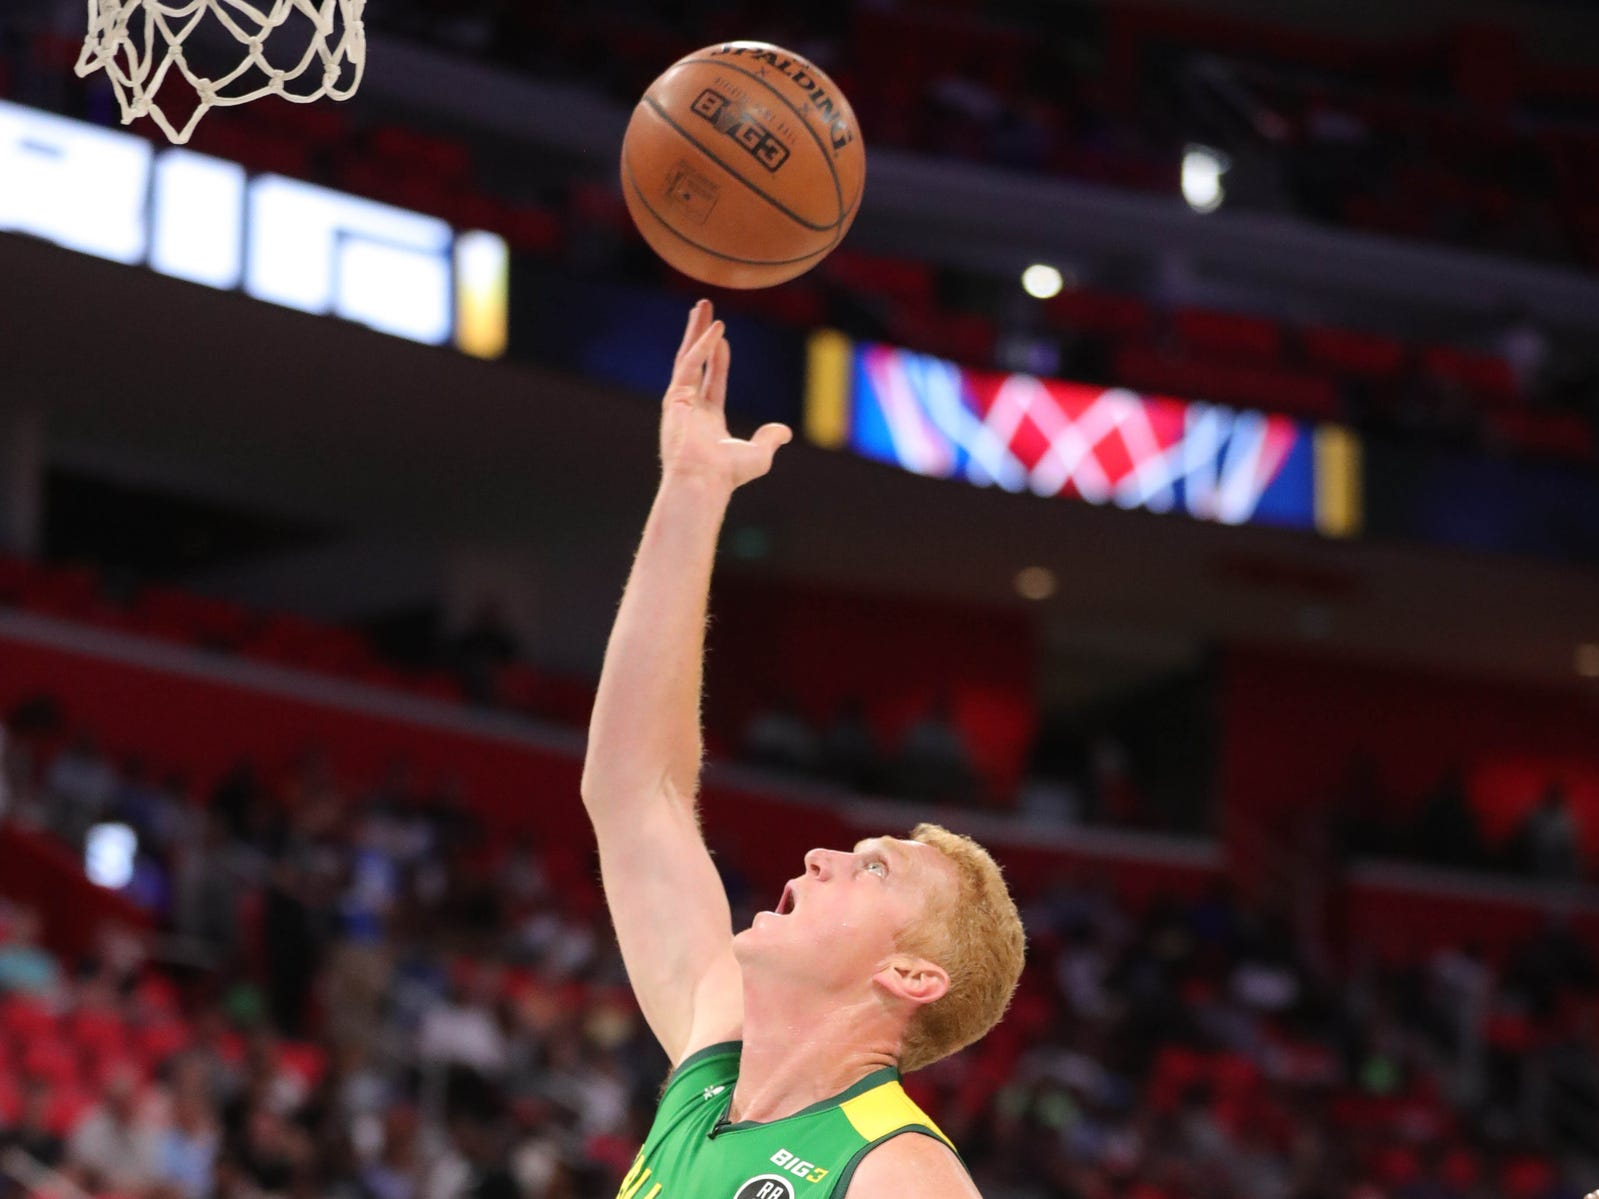 Ball Hogs Brian Scalabrine drives against 3s Company's Dahnytay Jones during BIG3 action on Friday, July 13, 2018 at Little Caesars Arena in Detroit.